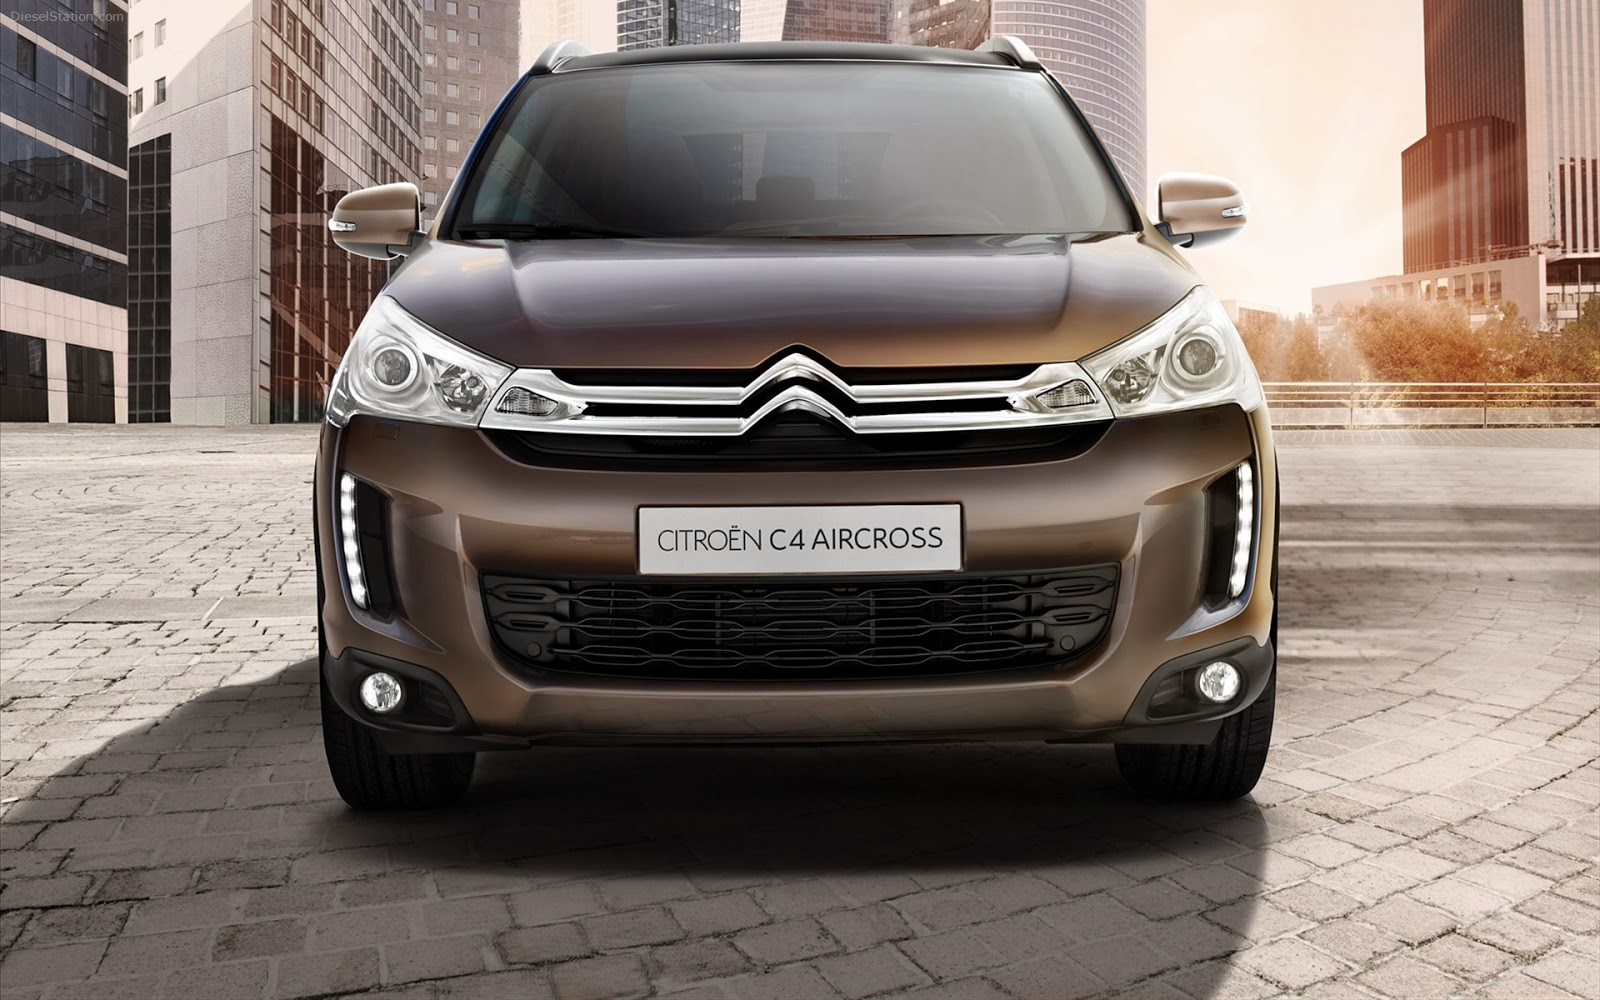 citroen c4 aircross 2014 wallpaper. Black Bedroom Furniture Sets. Home Design Ideas